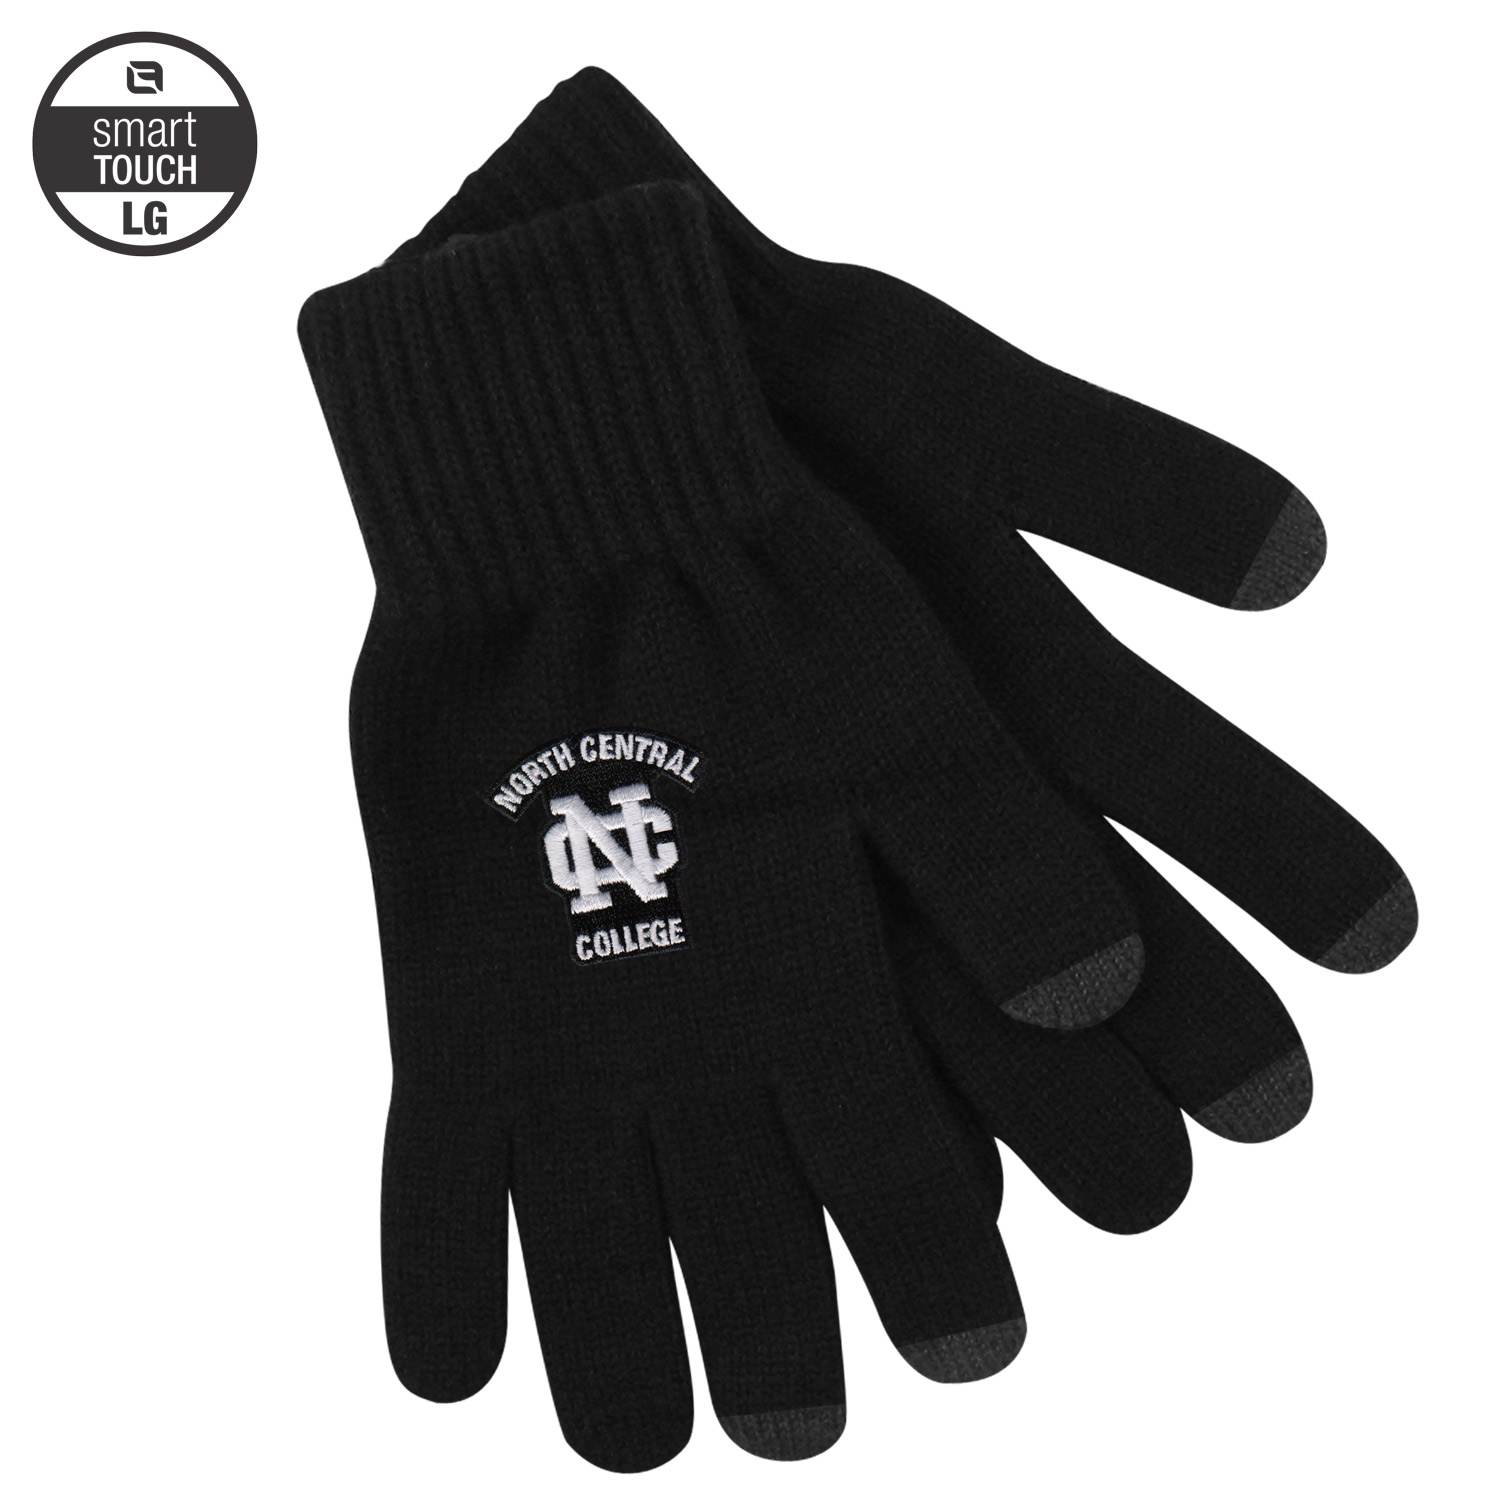 Image for the Black 'uText' Deluxe Knit Texting Glove(Large) product